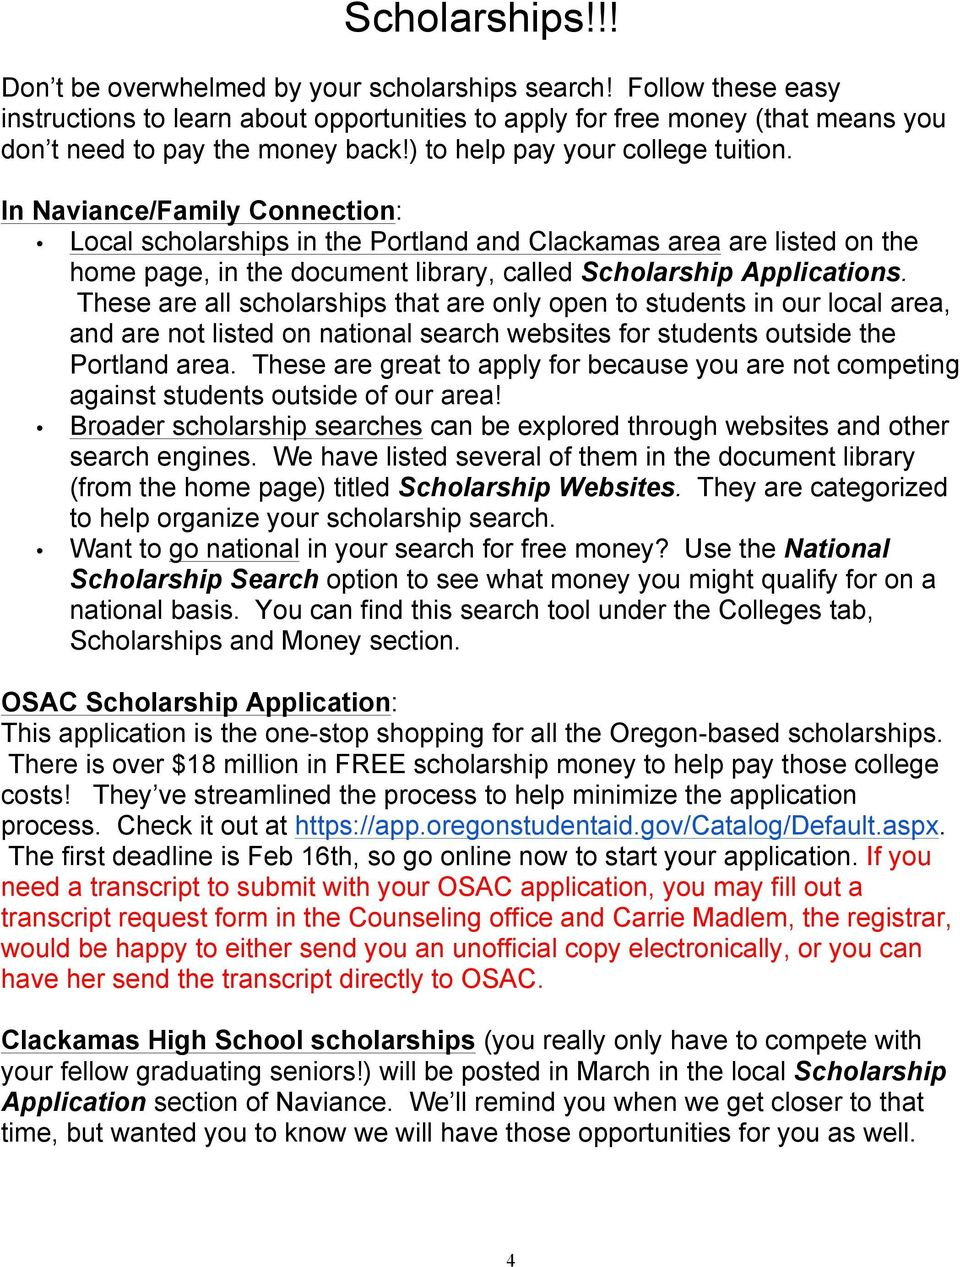 In Naviance/Family Connection: Local scholarships in the Portland and Clackamas area are listed on the home page, in the document library, called Scholarship Applications.